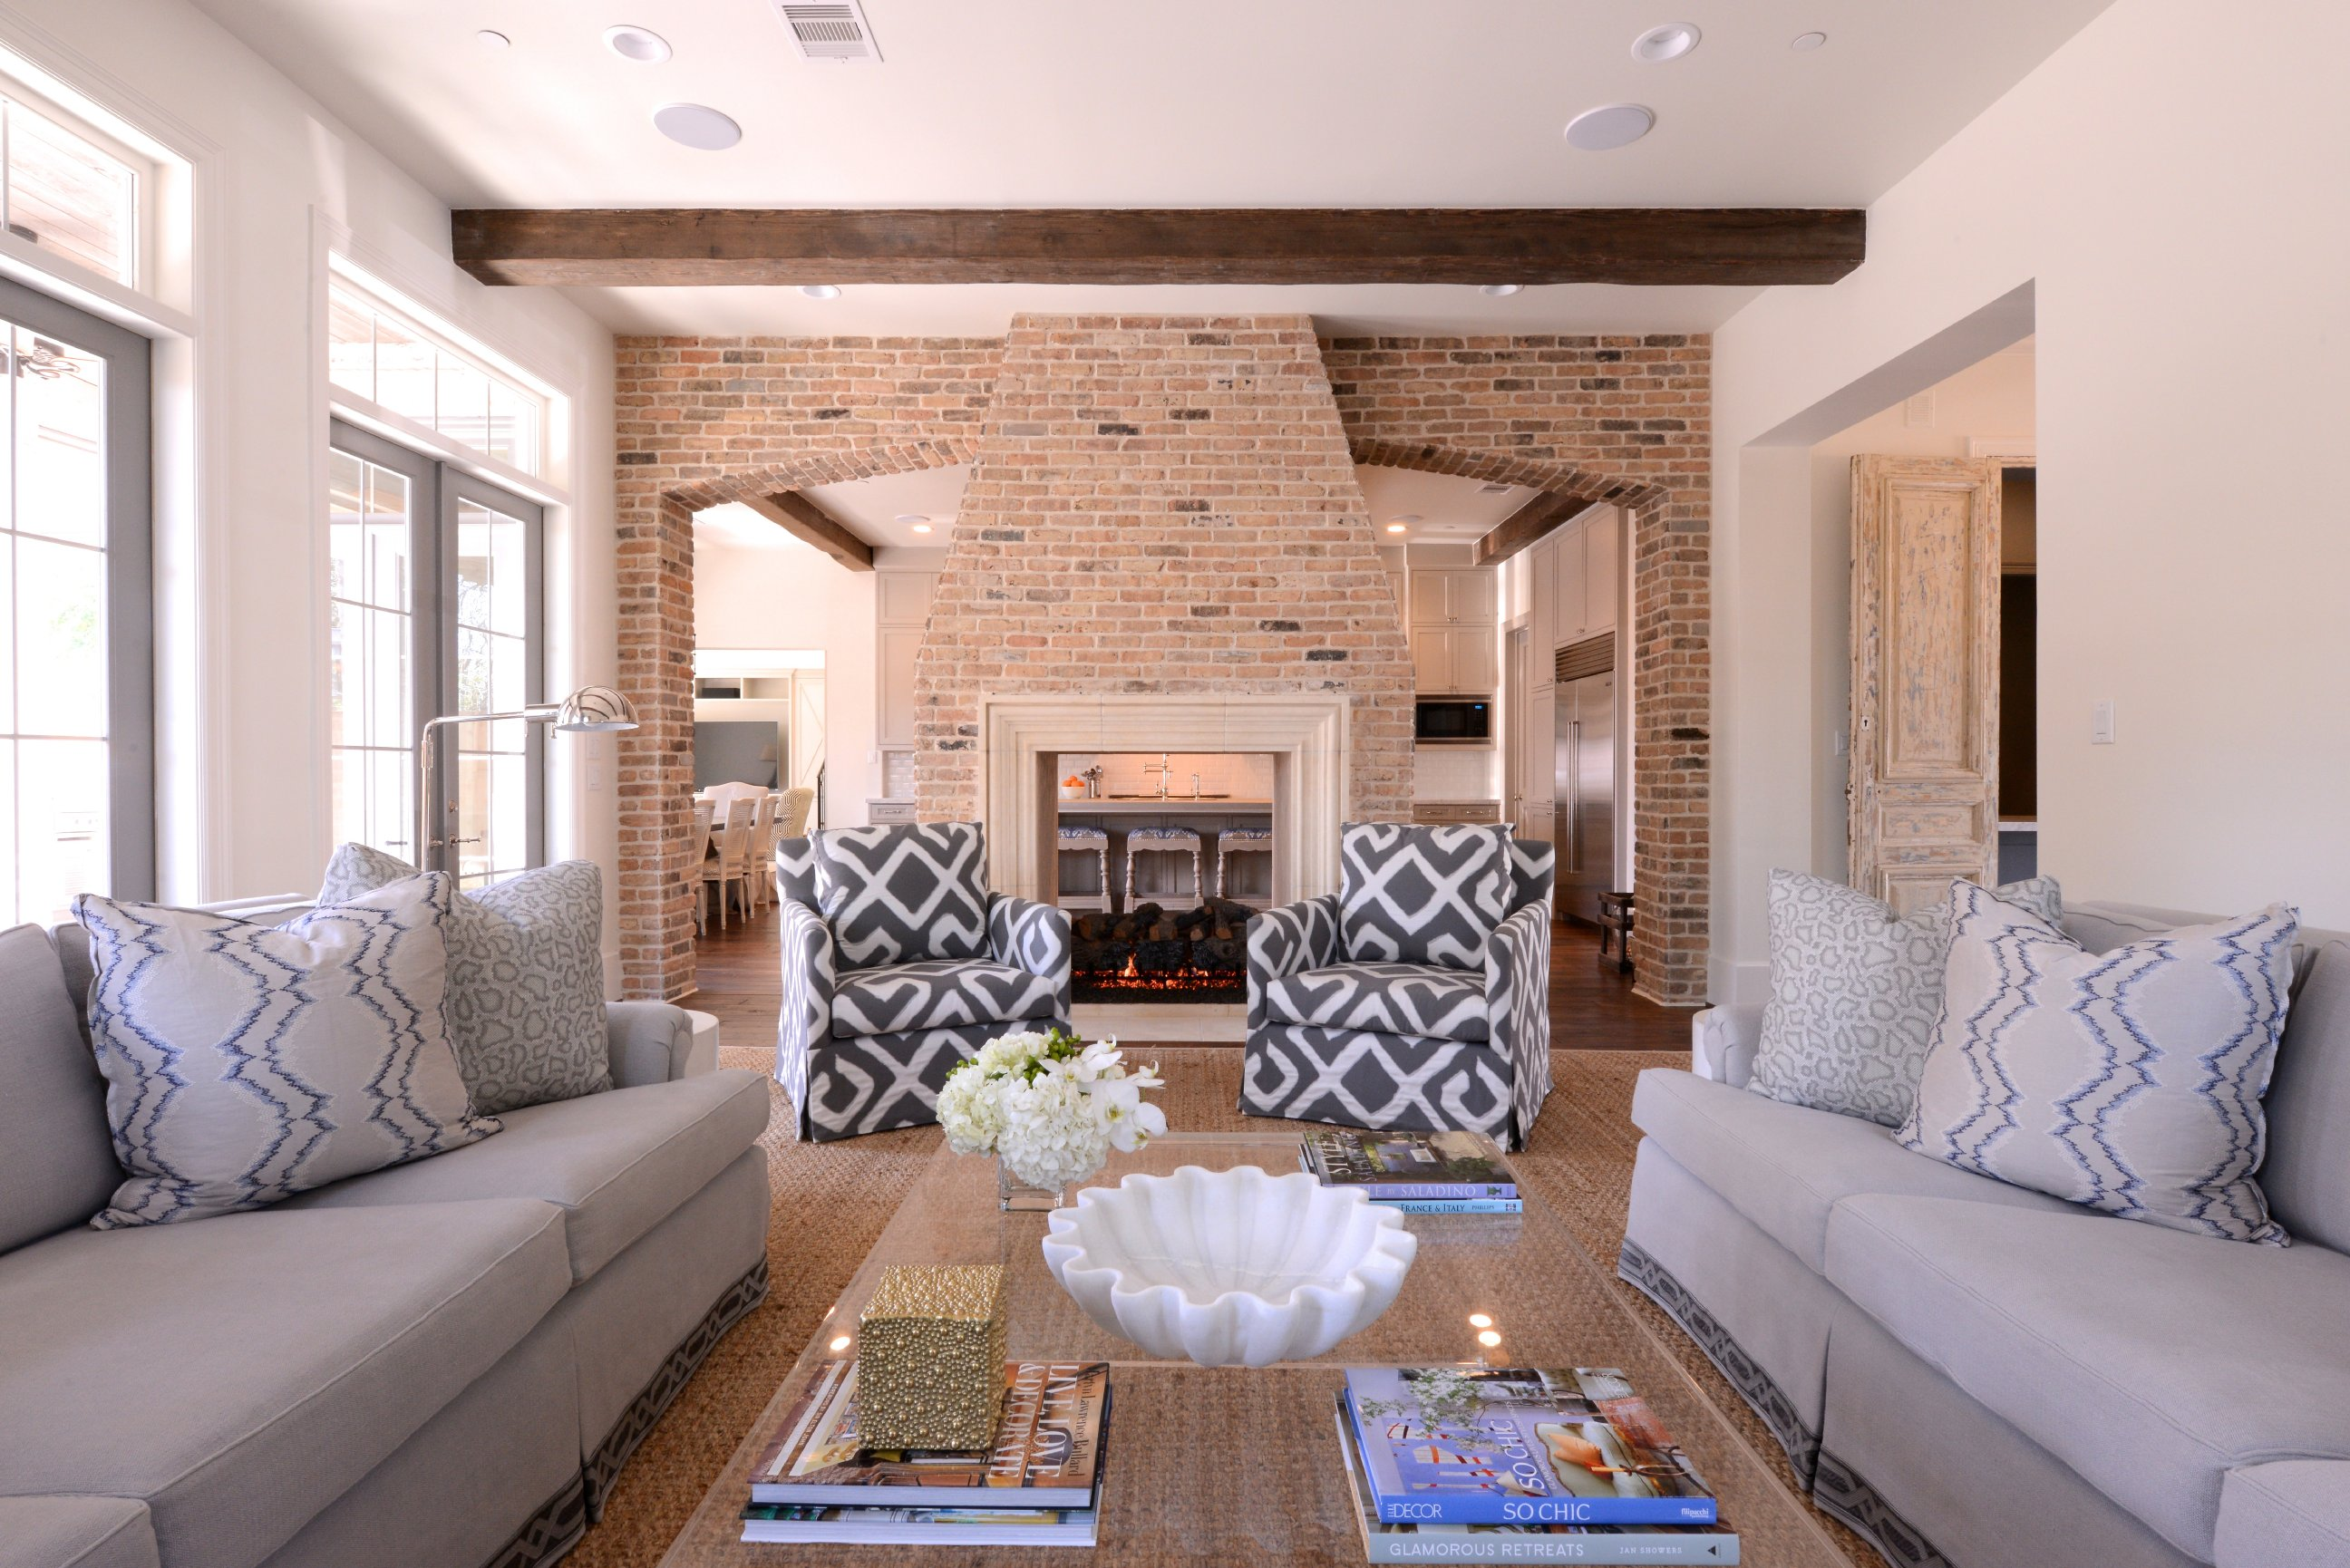 Living Room With Two Couches I like the white and gray but I